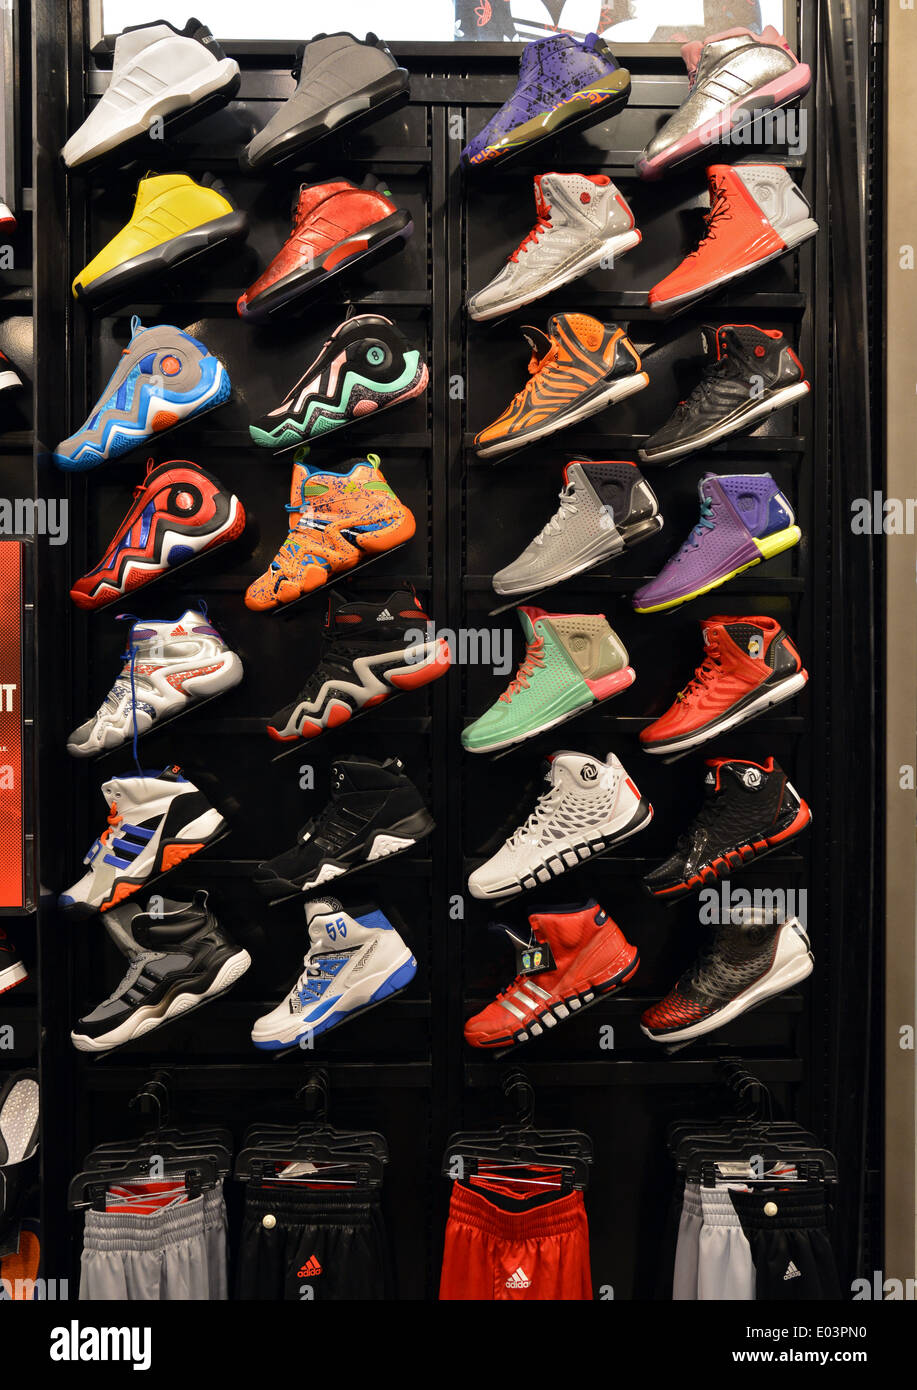 ab3d4a2812 Colorful men s athletic shoes for sale at a Foot Locker store at Roosevelt  Field in Long